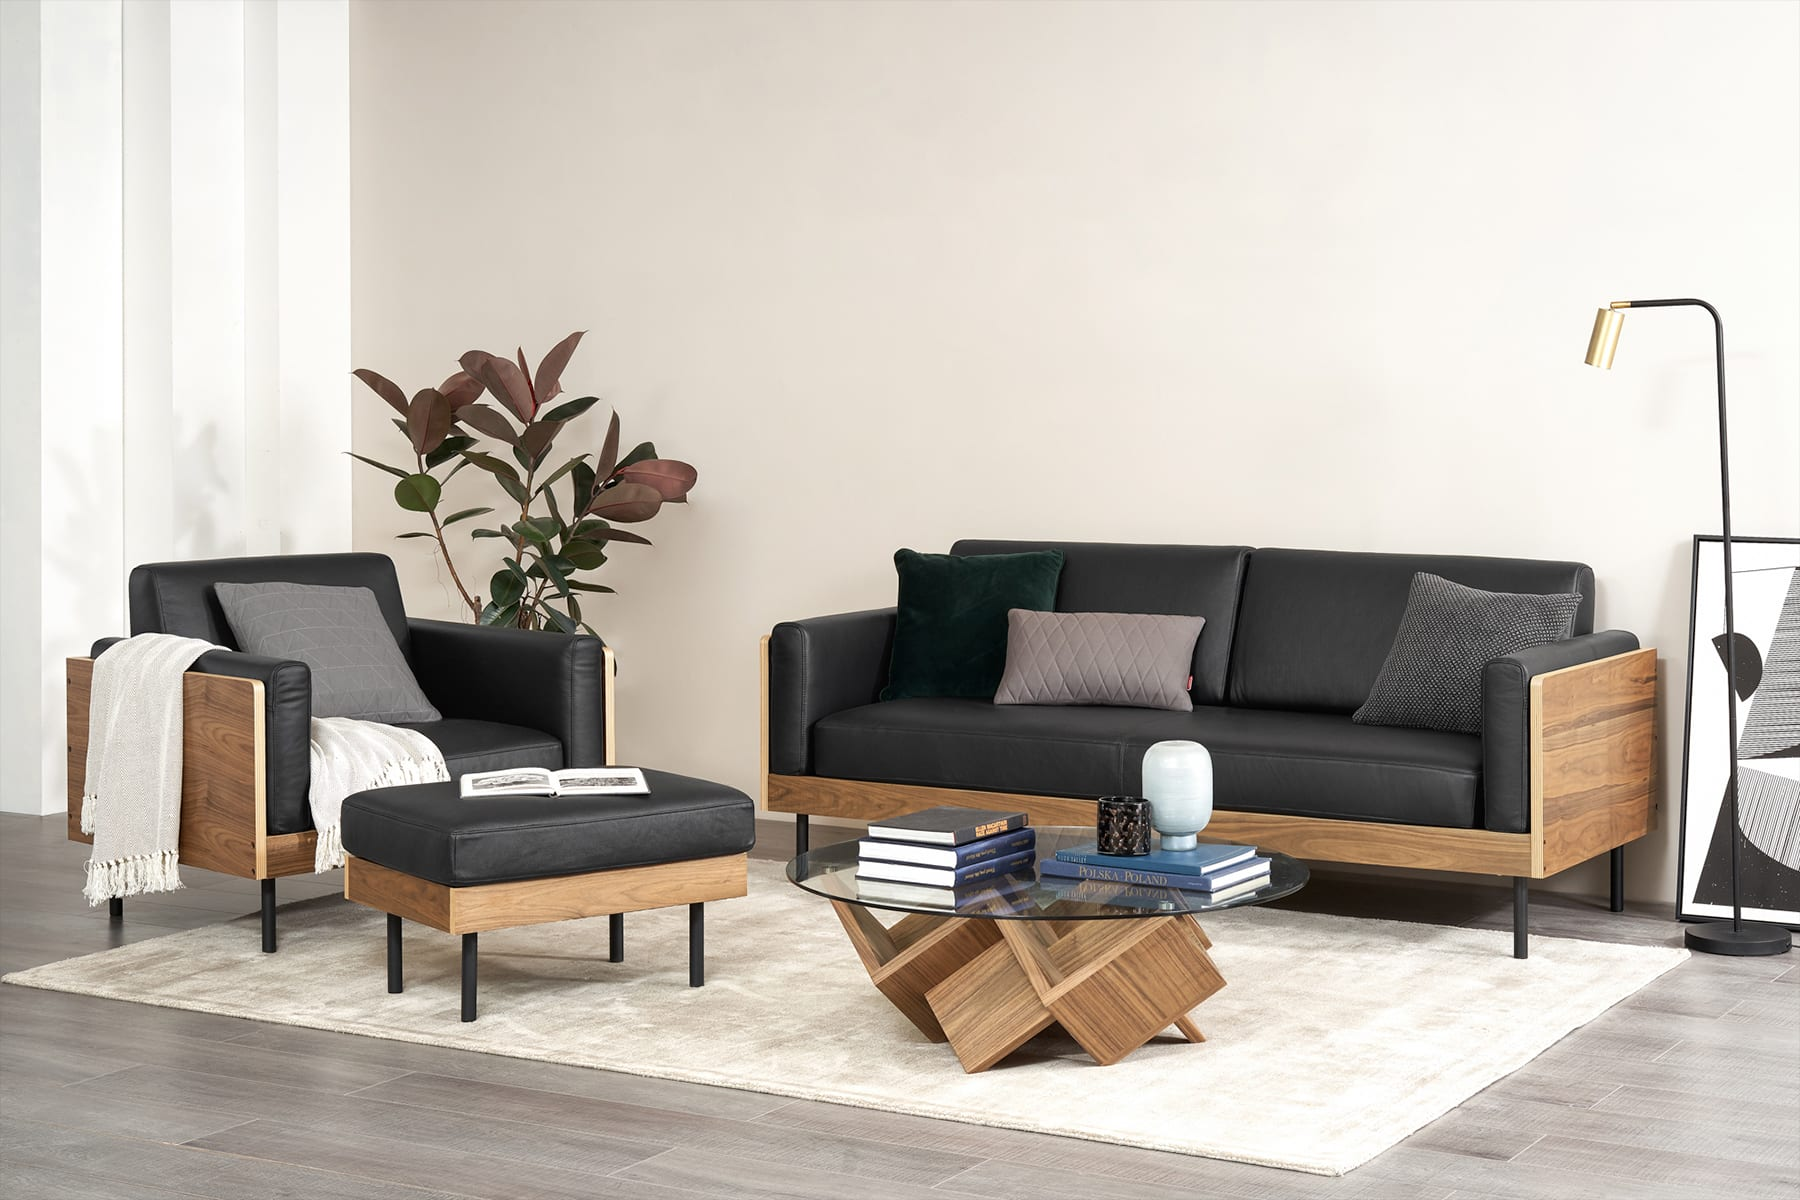 light and airy living room furniture with black leather sofa, geometric glass coffee table and floor lamp